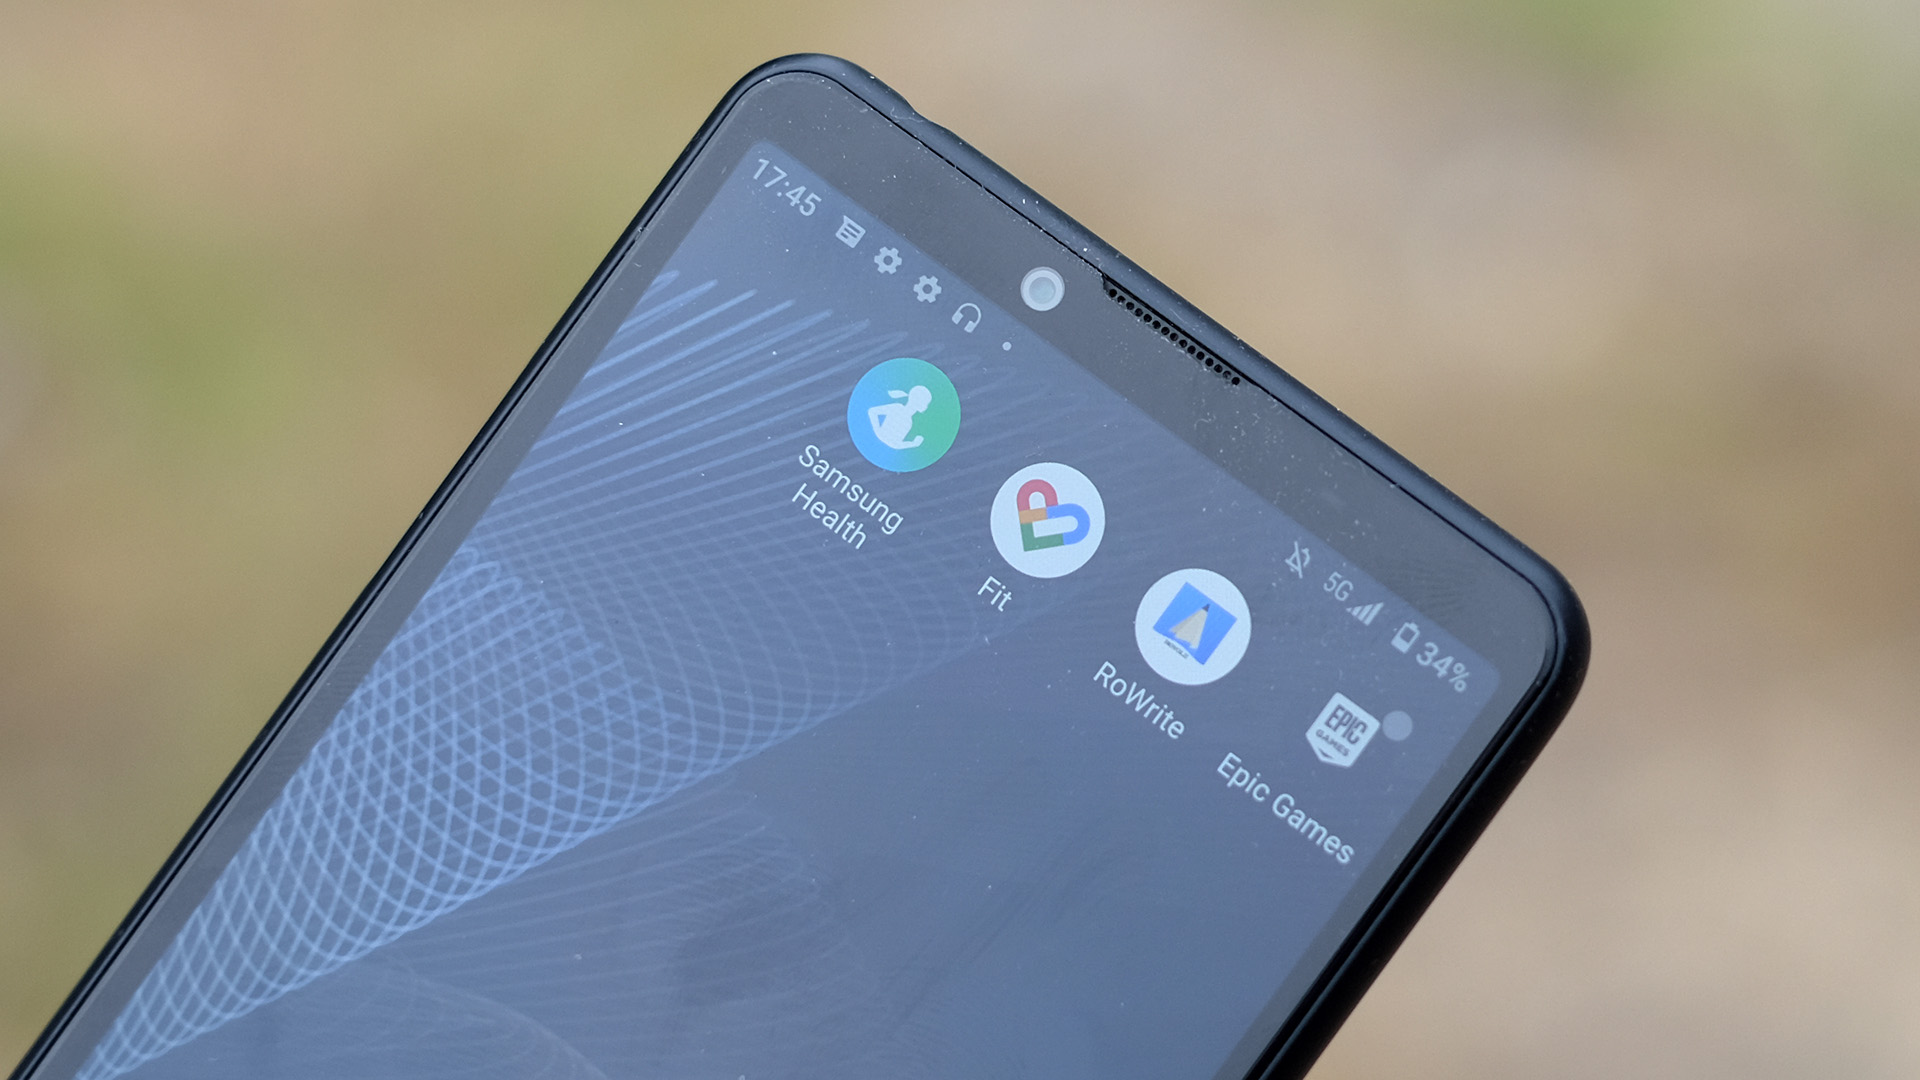 A close view of the Xperia 10 III's screen and speaker